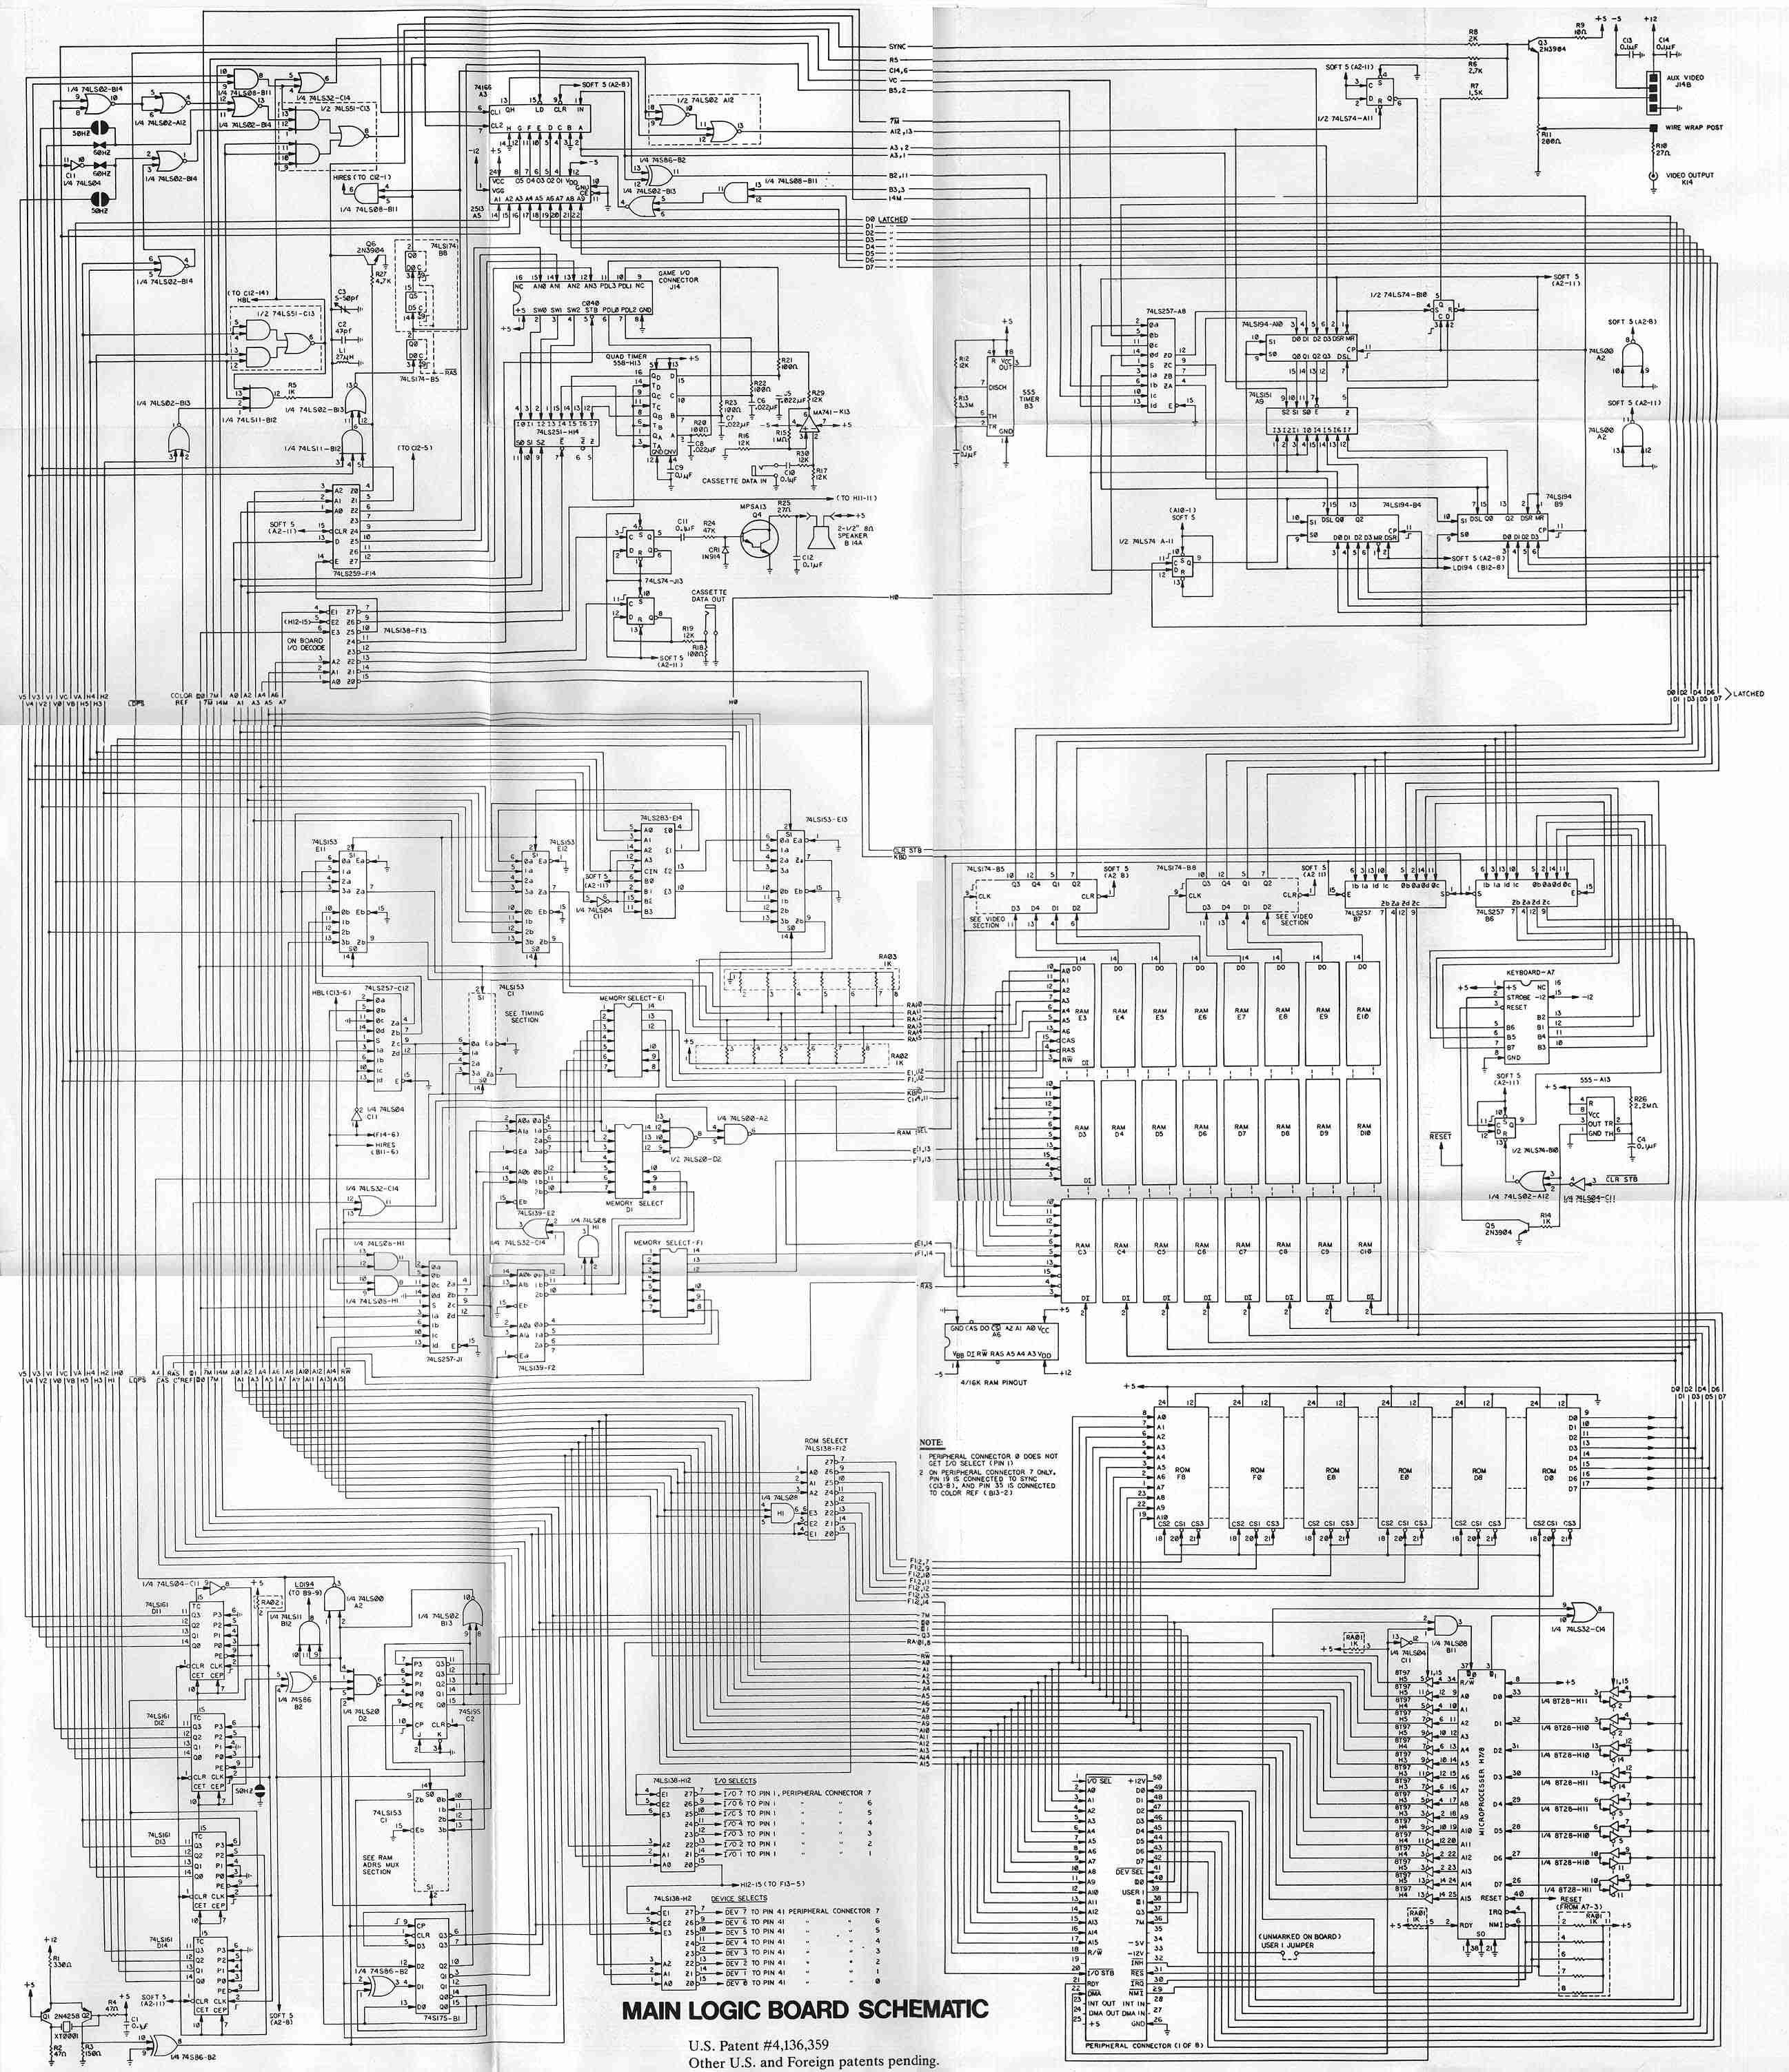 Apple 2 Main Logic Board Electronic Circuit Schematic In Schematics